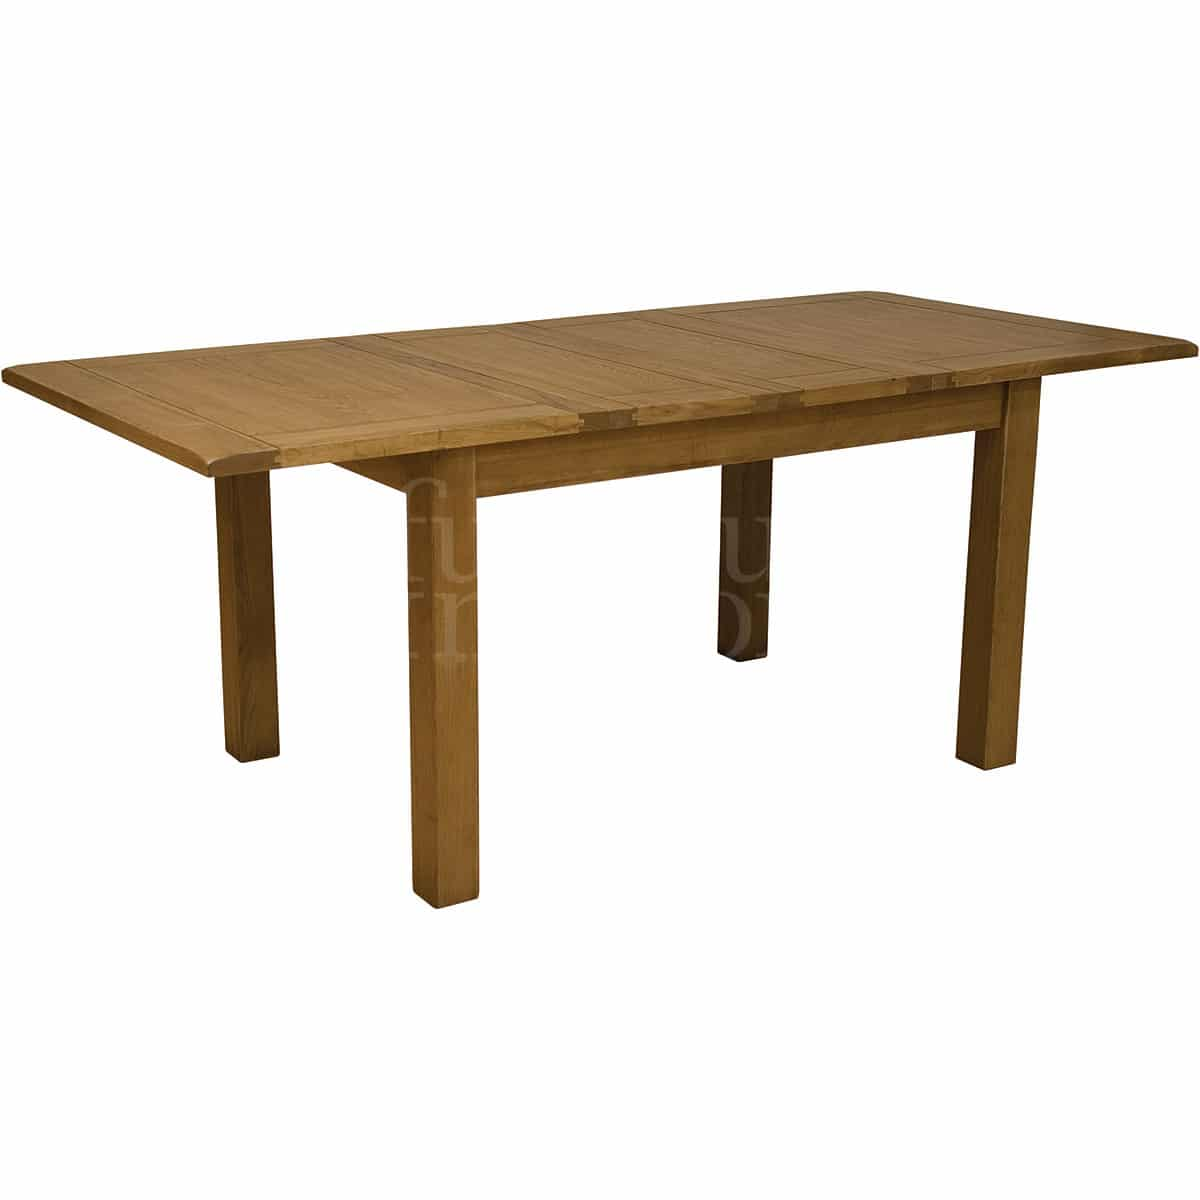 Rustic Extending Dining Table Furniture and Mirror : RUSTEXT from furnitureandmirror.com size 1200 x 1200 jpeg 19kB